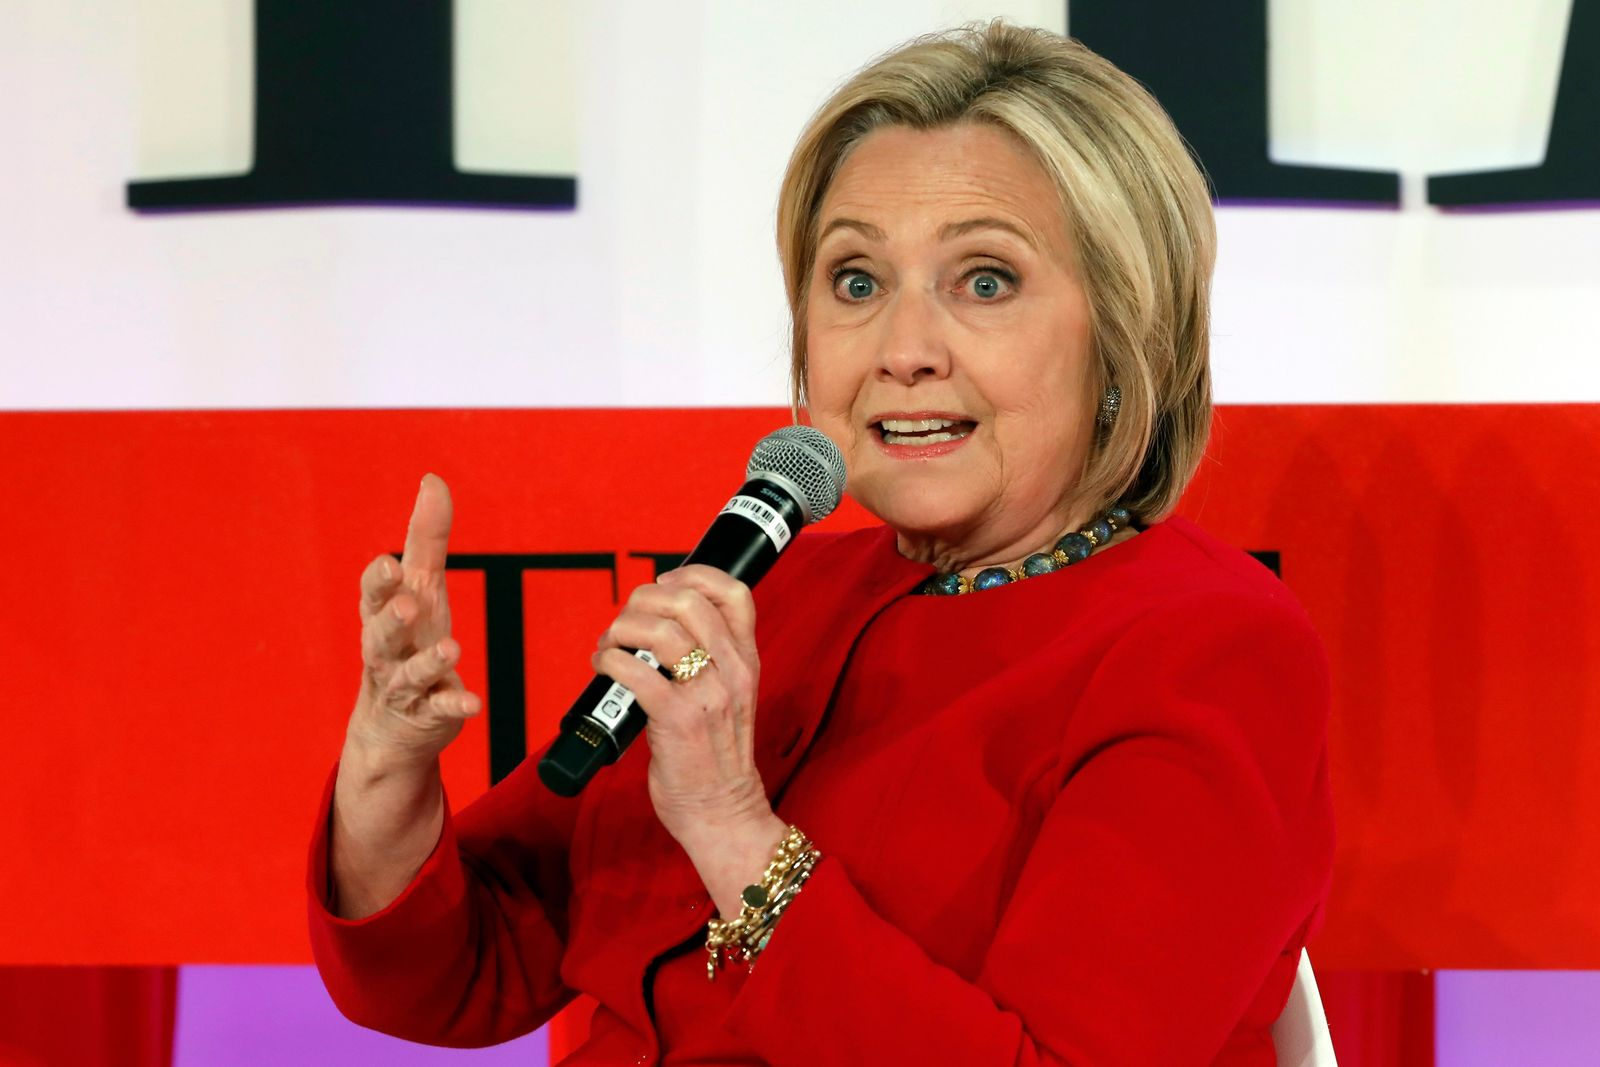 FILE - In this April 23, 2019, file photo, Hillary Clinton speaks during the TIME 100 Summit, in New York. Clinton is popping up in presidential politics again, and some Democrats are wary even as they praise her role as a senior party leader. (AP Photo/Richard Drew, File)